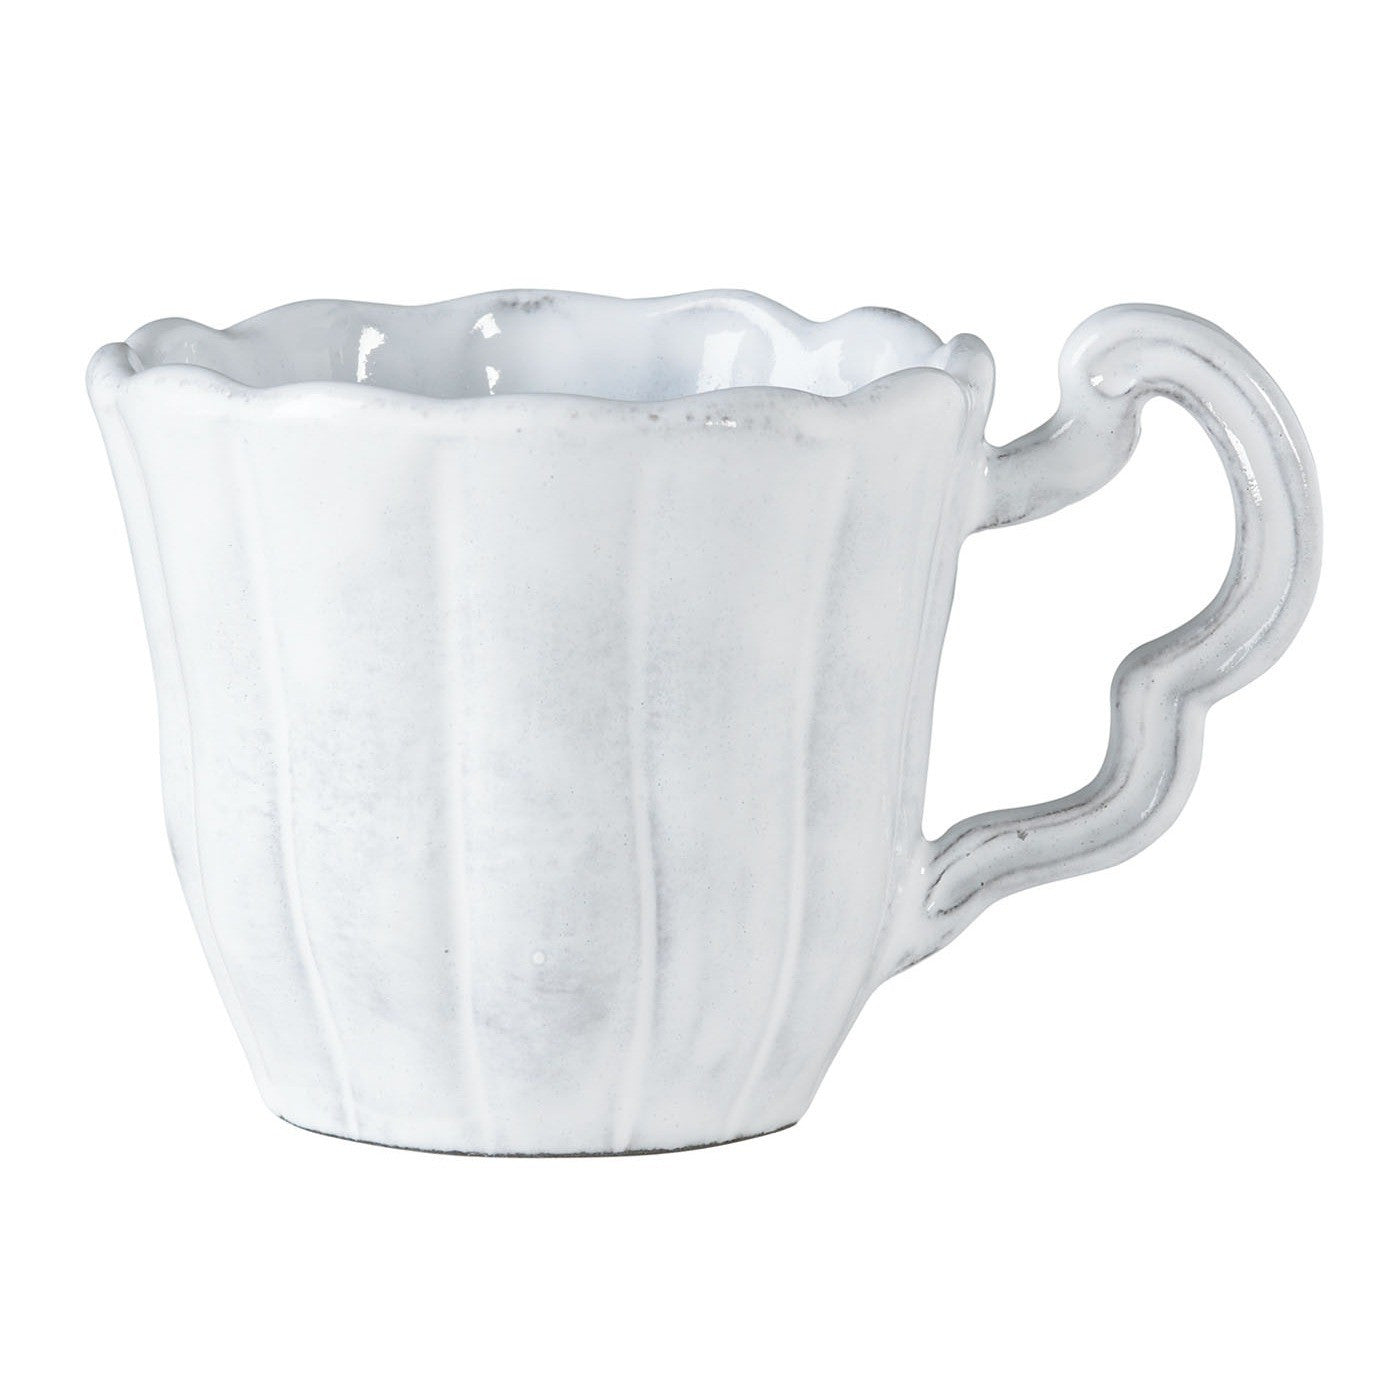 Incanto Scallop Mug - Set of 4 , tableware - Vietri, Pezzo Bello  - 1